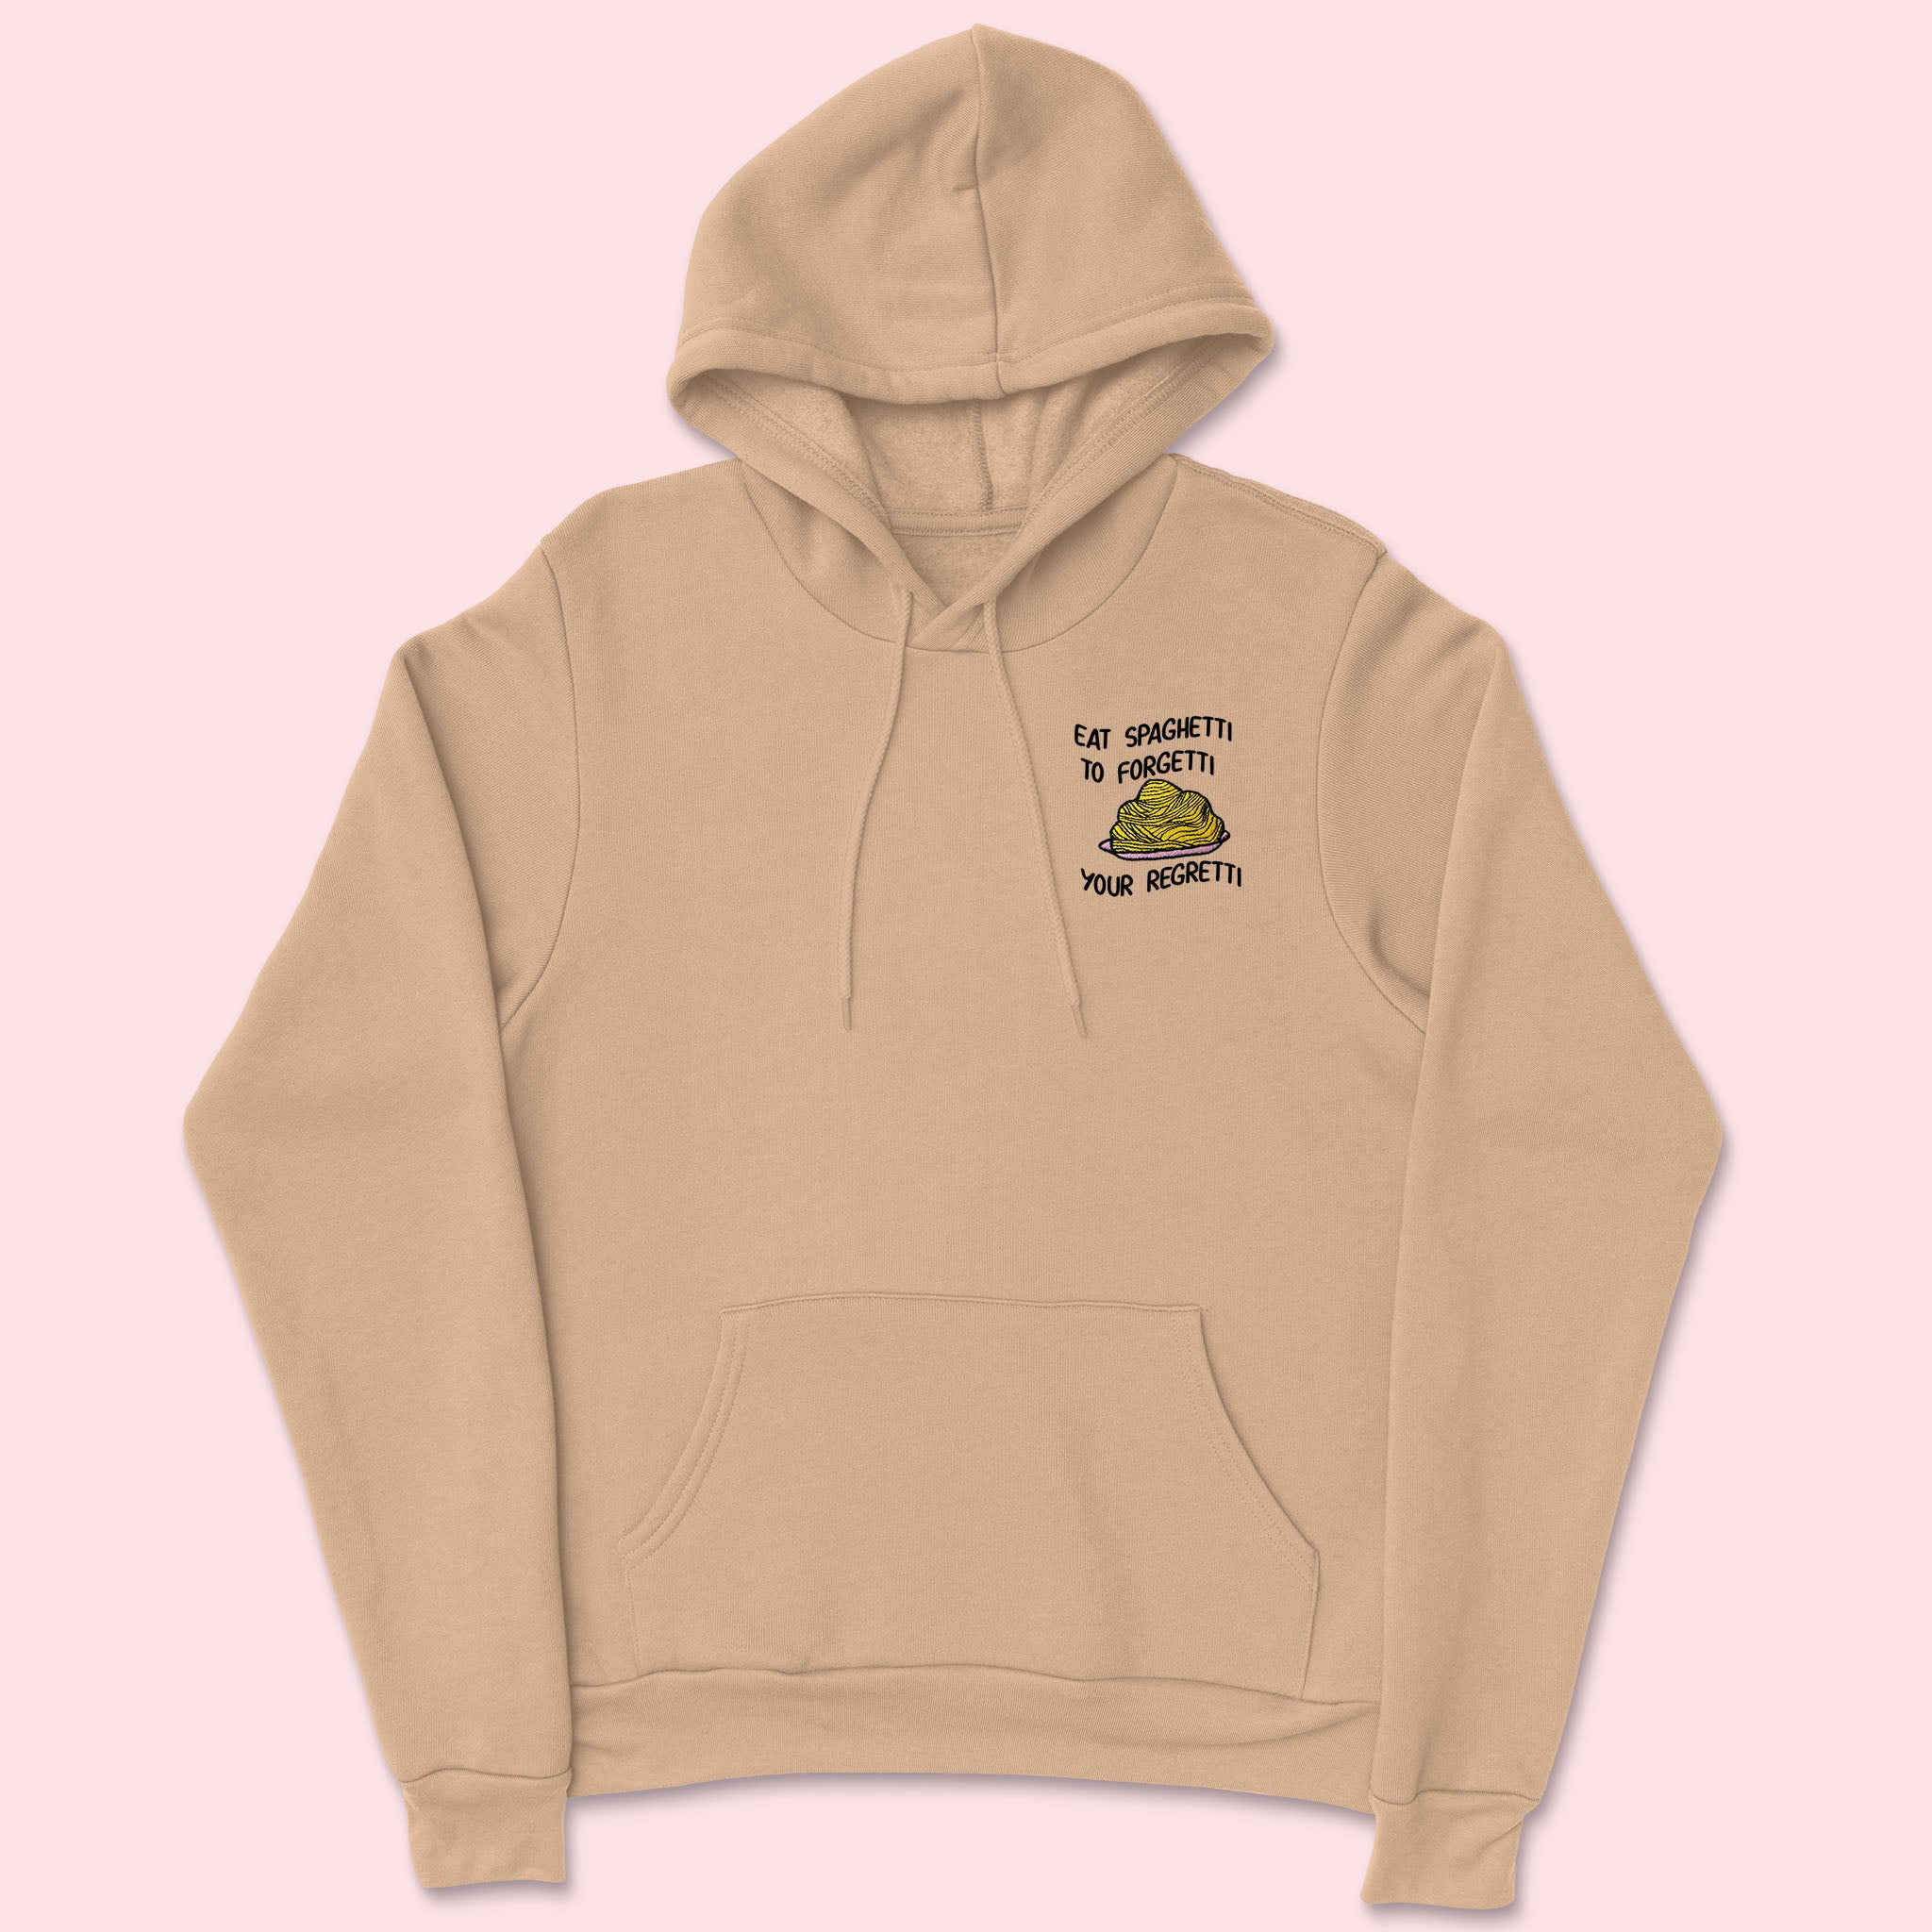 Eat Spaghetti- Embroidered Unisex Hoodie